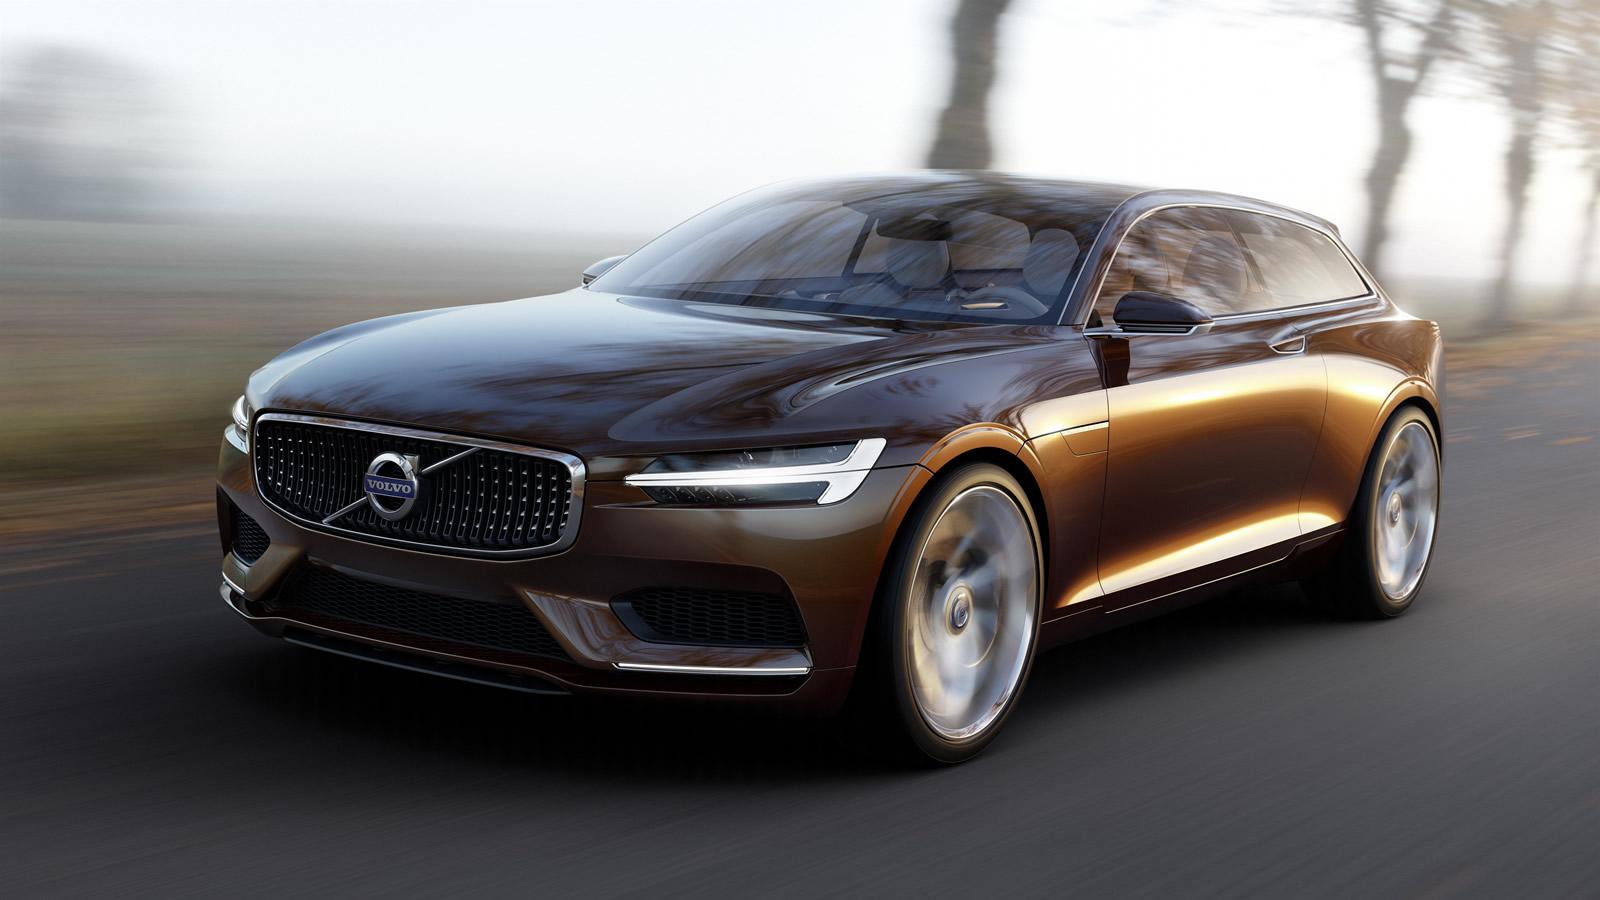 volvo promises death-proof cars by 2020